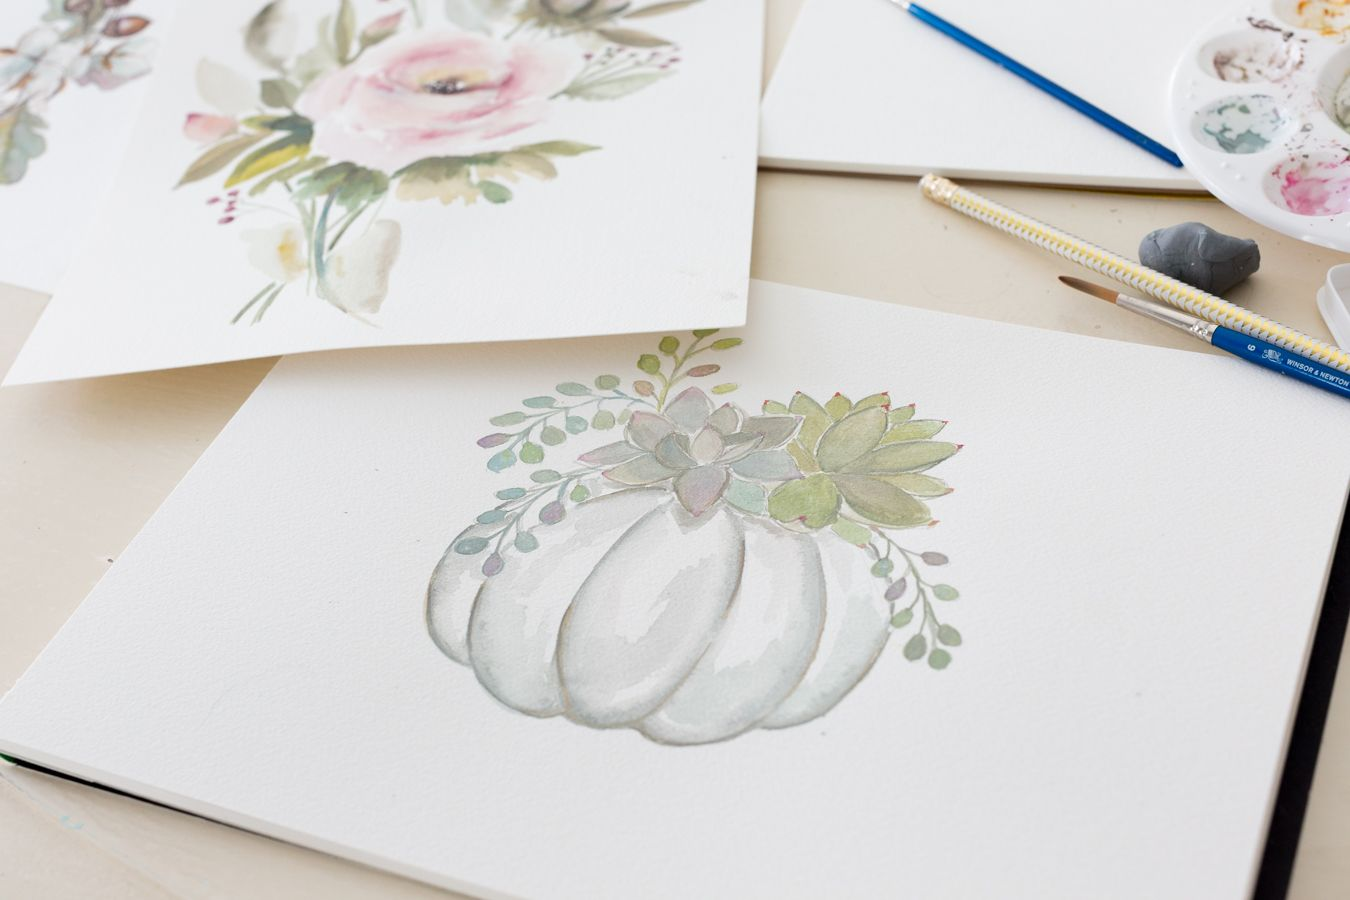 Watercolor Lessons And Free Printable Watercolor Lessons